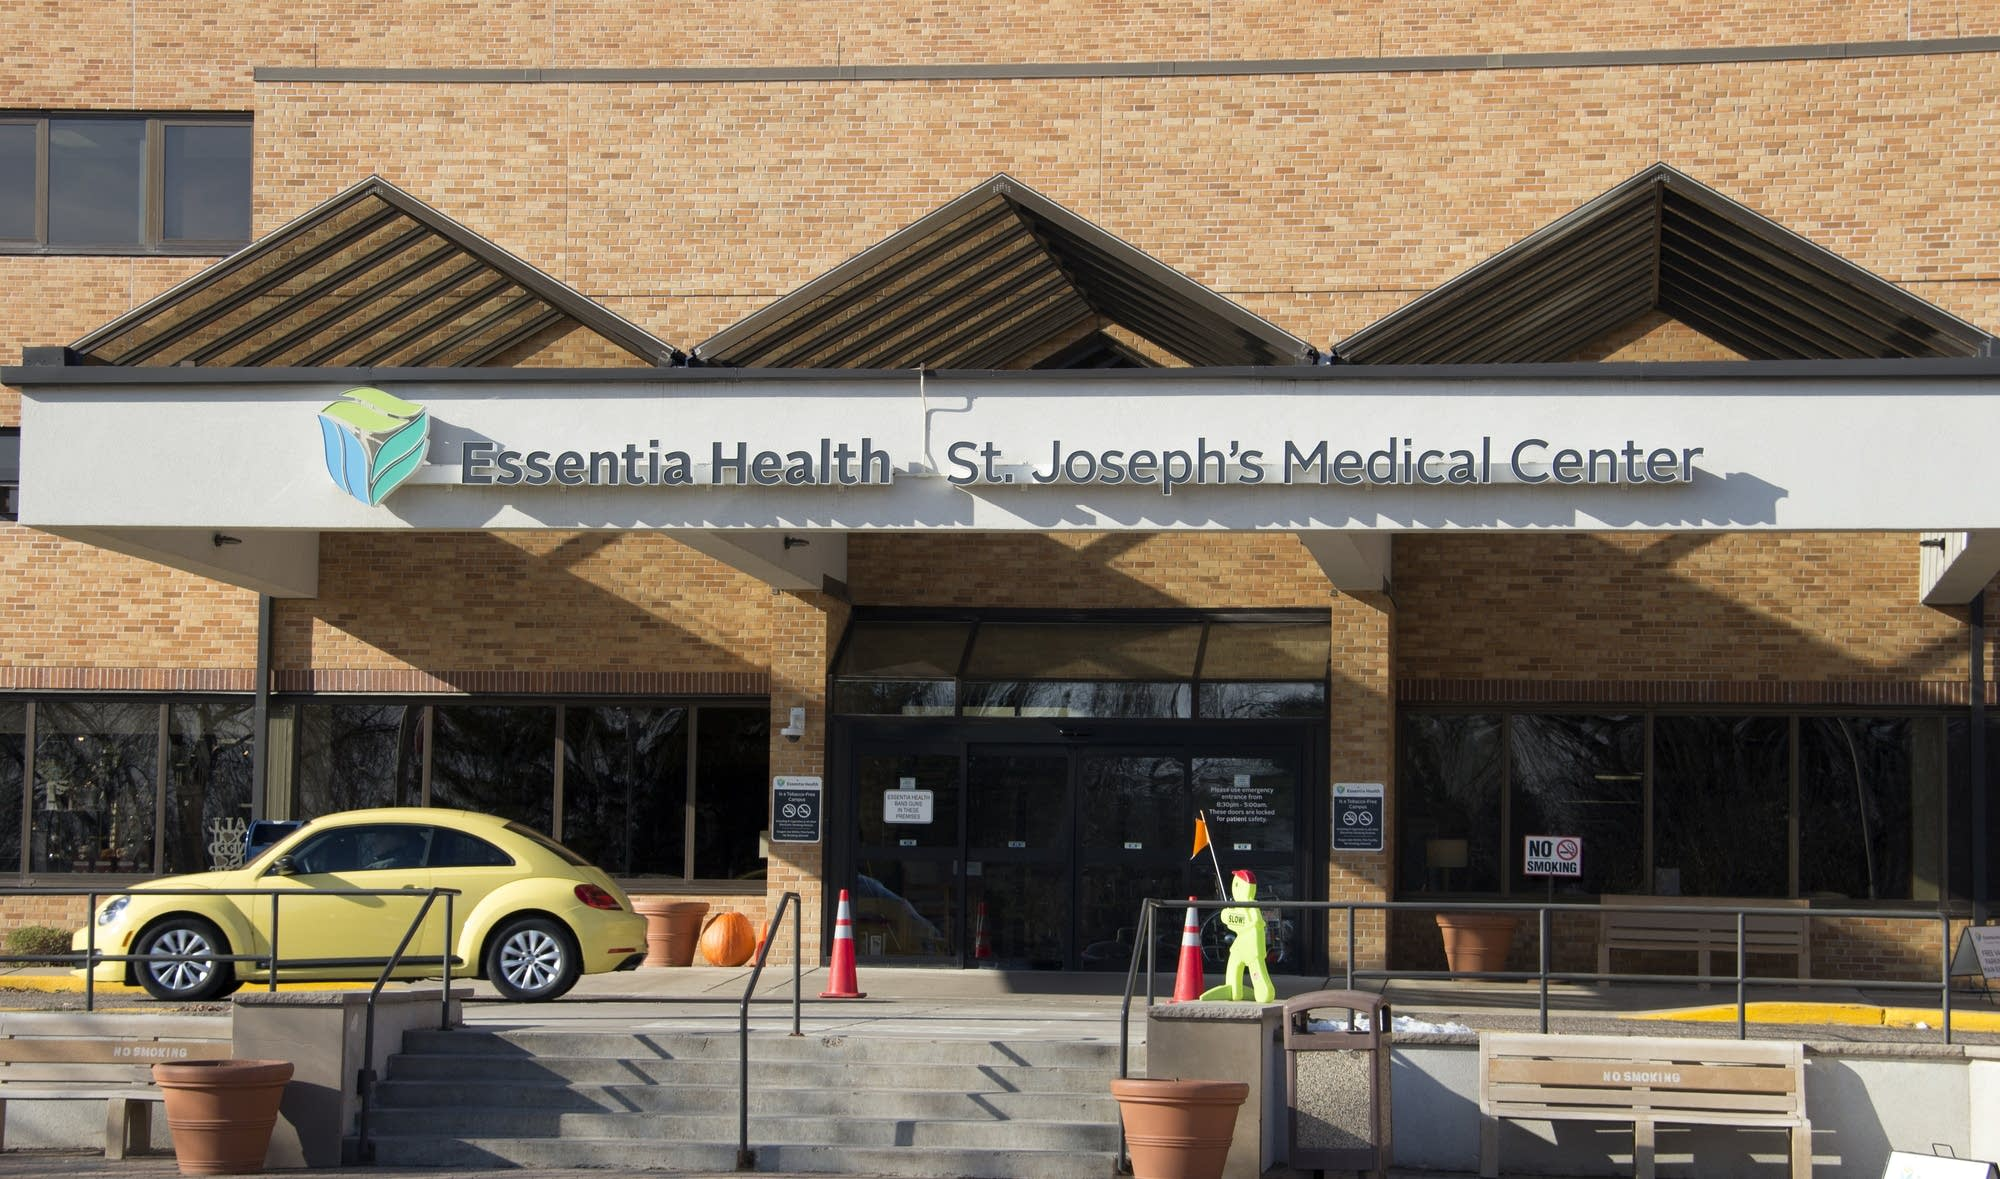 St. Joseph's Medical Center in Brainerd